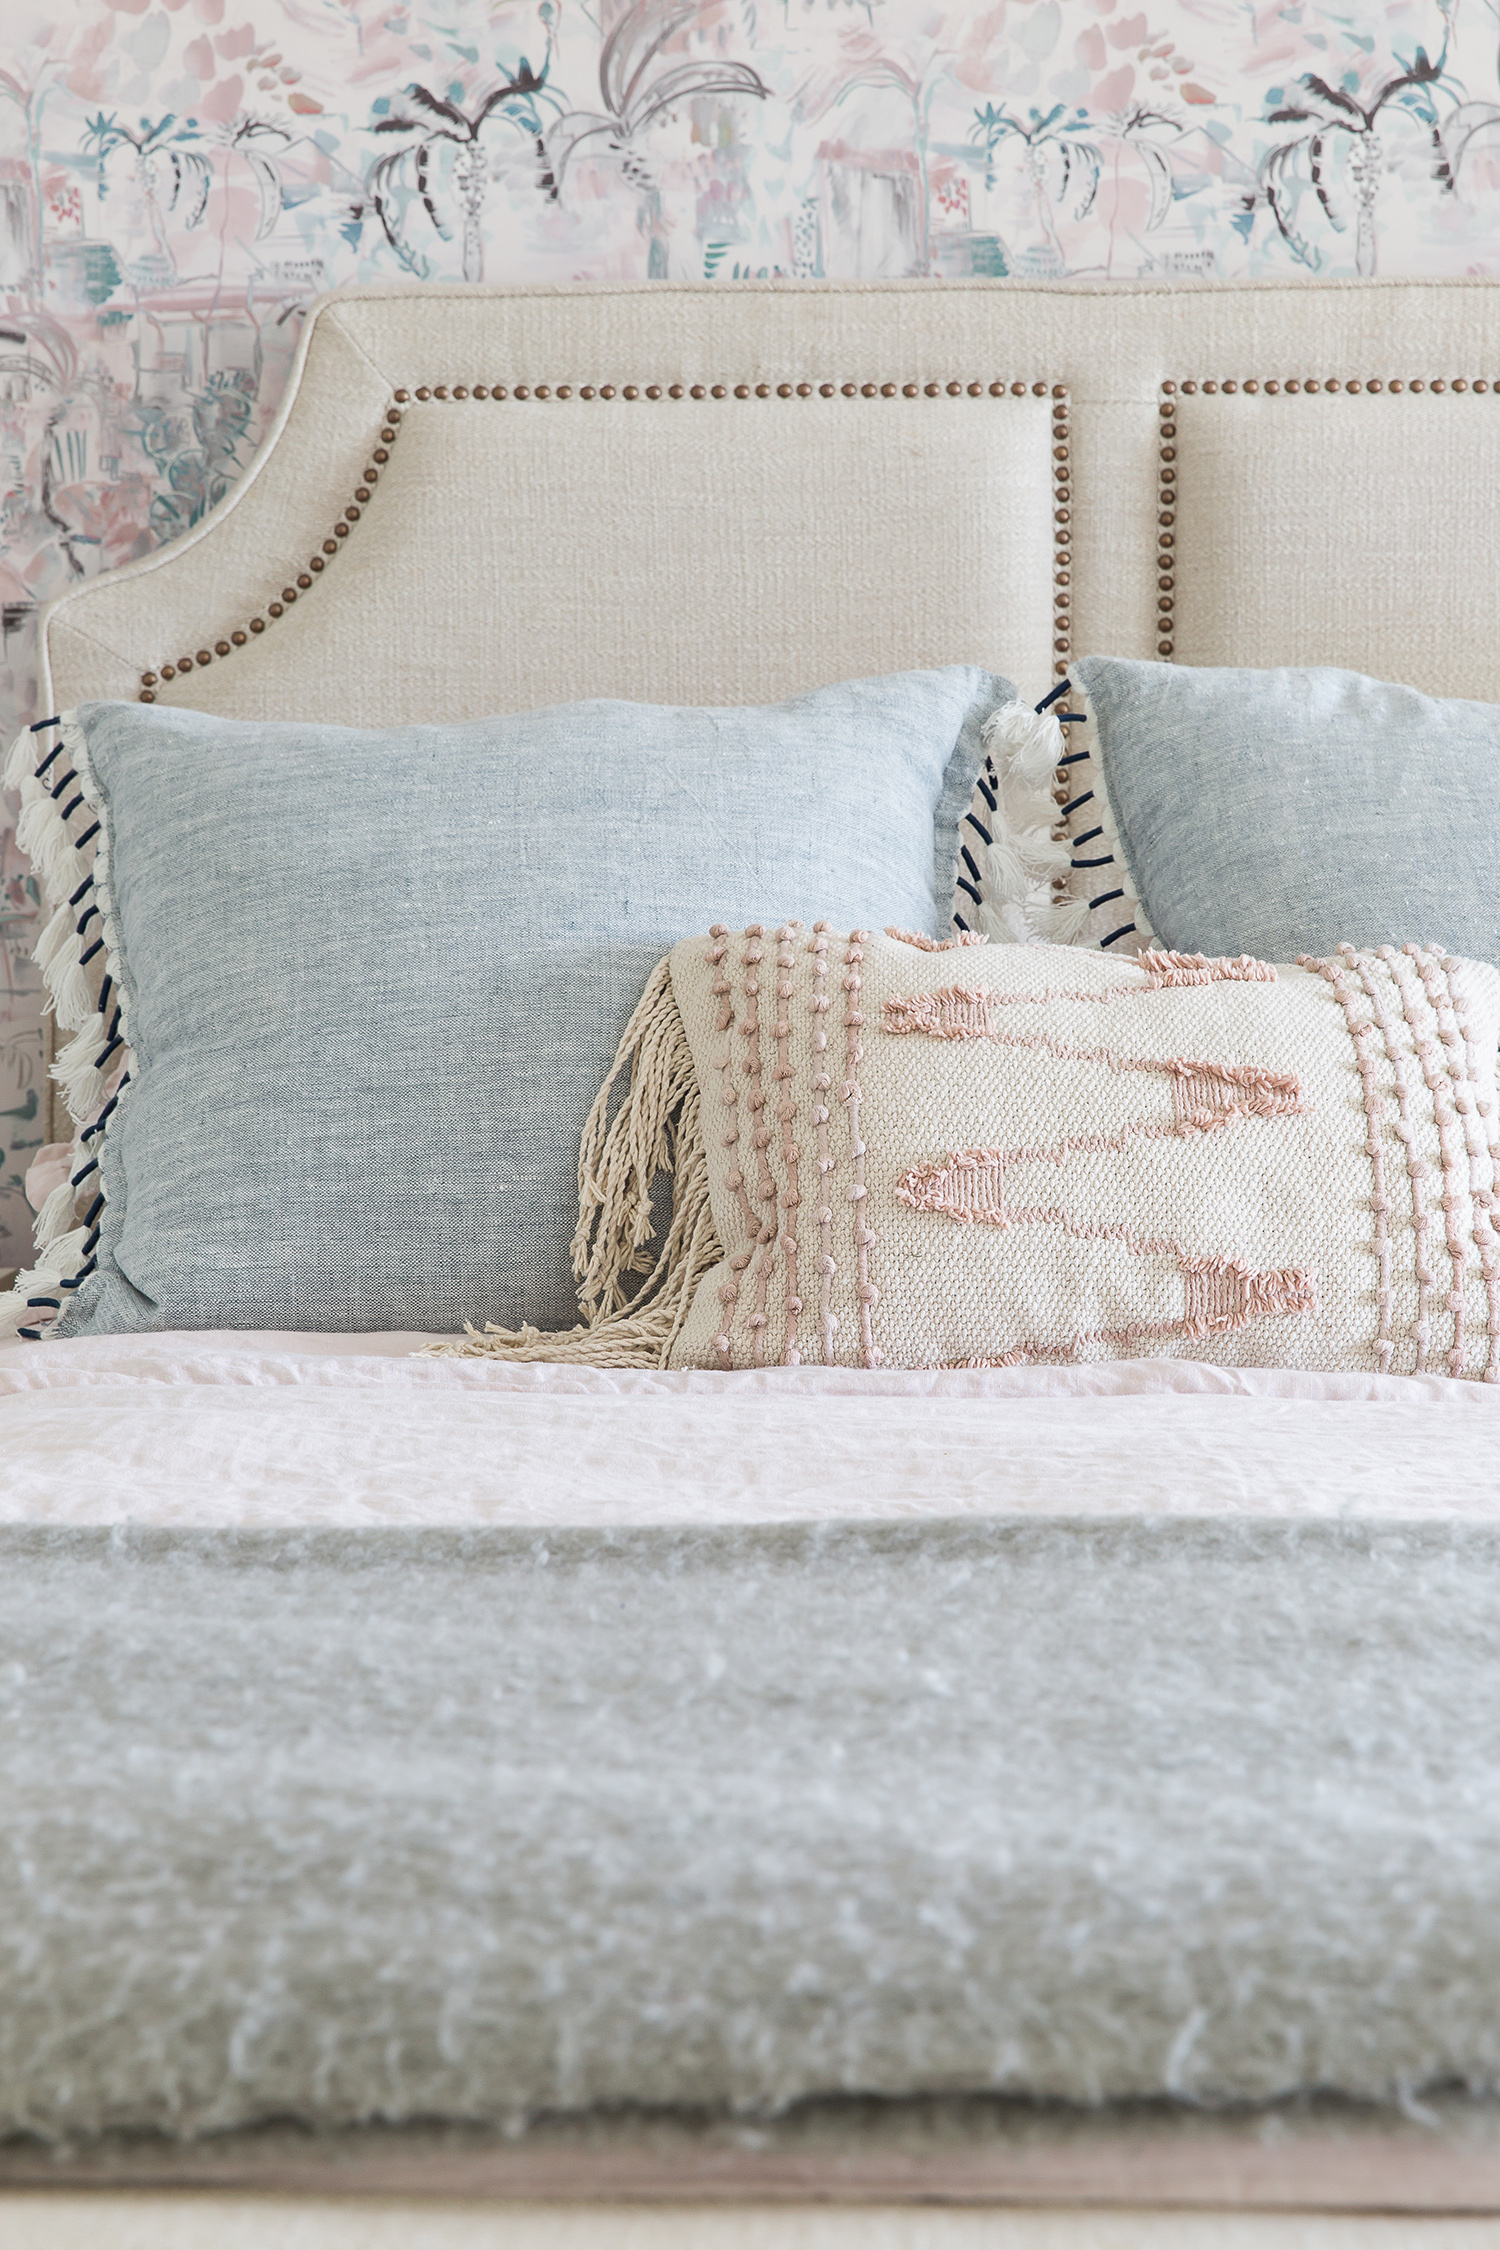 blue-gray and pink pastel pillows on bed